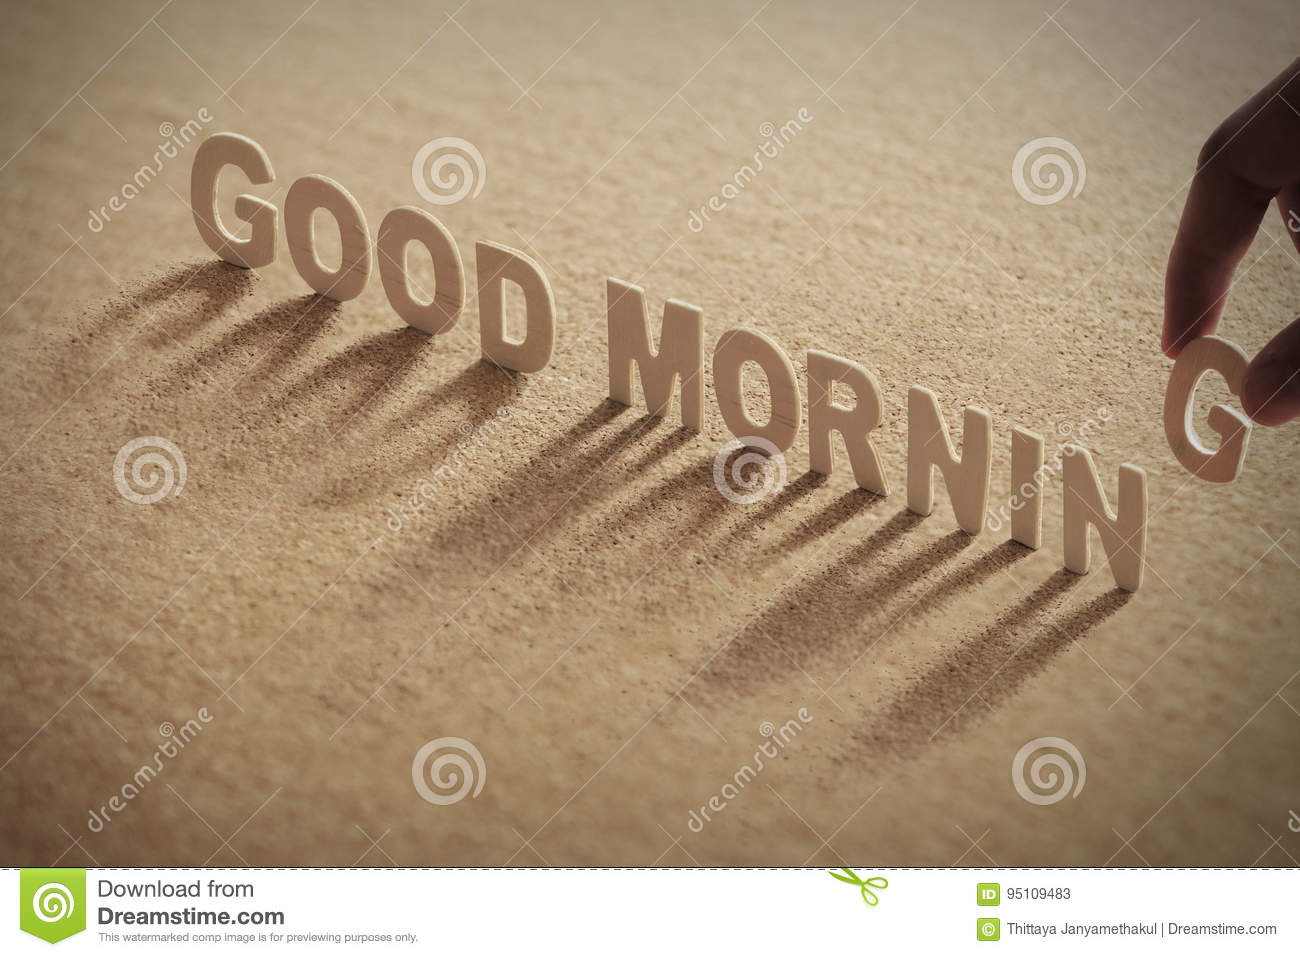 GOOD MORNING wood word on compressed board